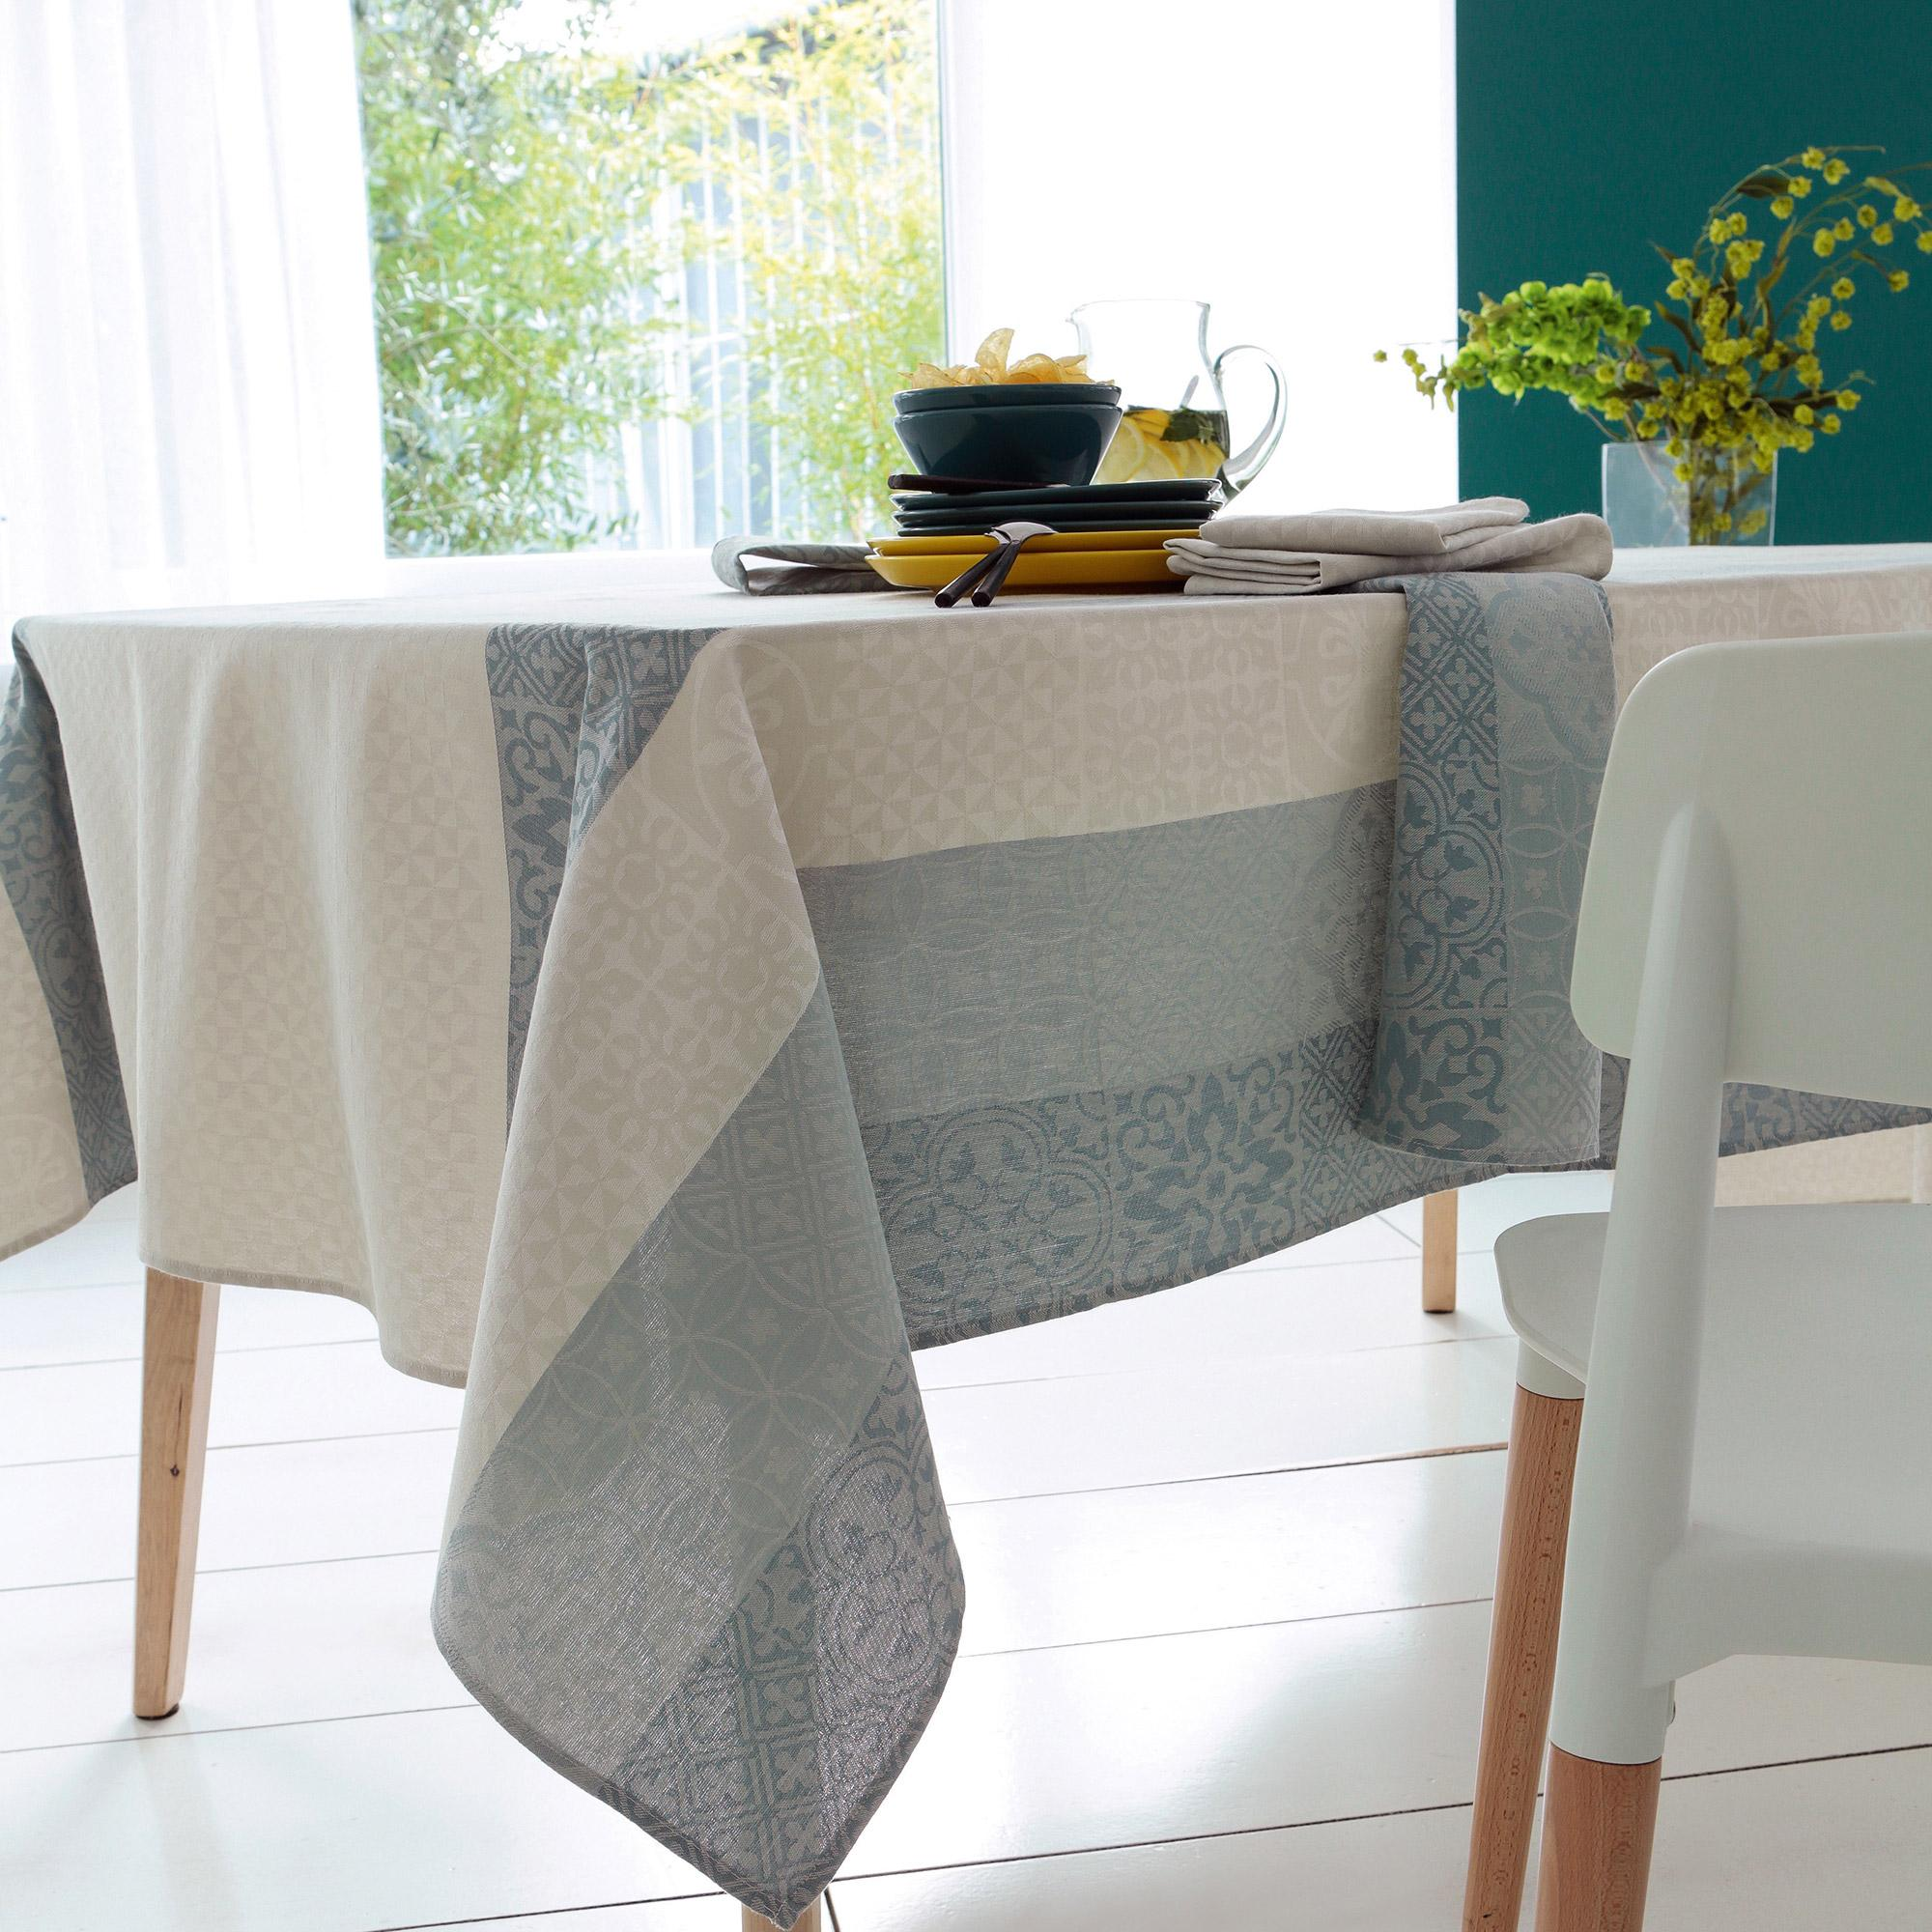 Nappe Coton Nappe Rectangle 150x350 Cm Jacquard 100 Coton Enduction Acrylique Mosaic Perle Gris